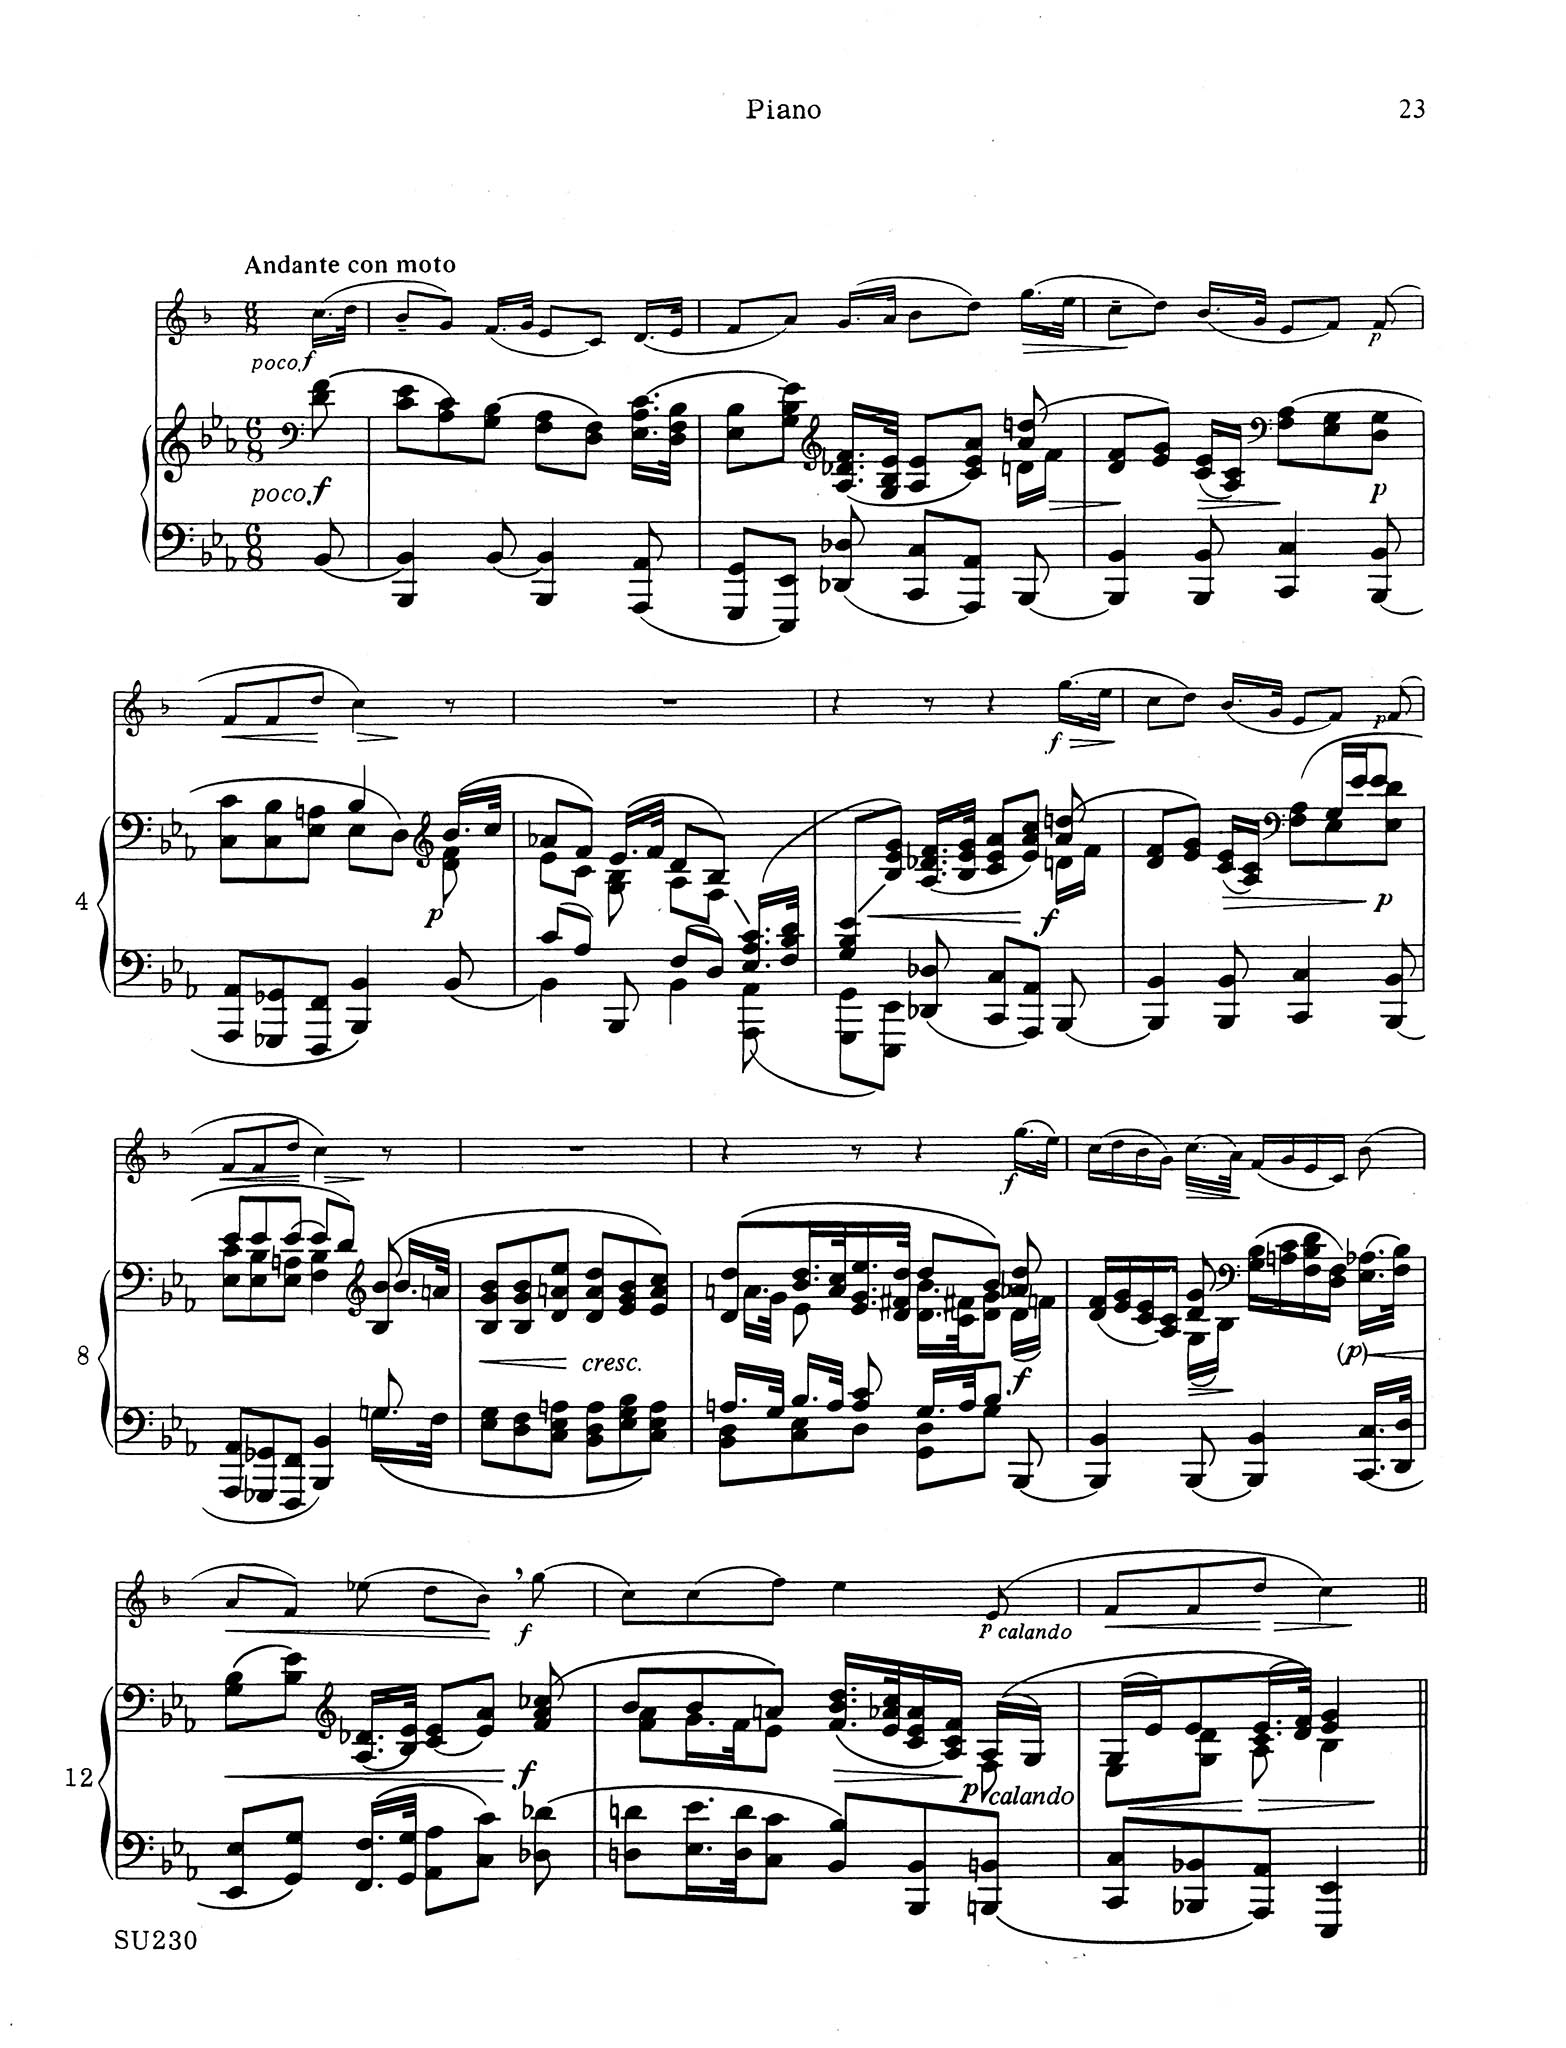 Sonata in E-flat Major, Op. 120 No. 2 - Movement 3